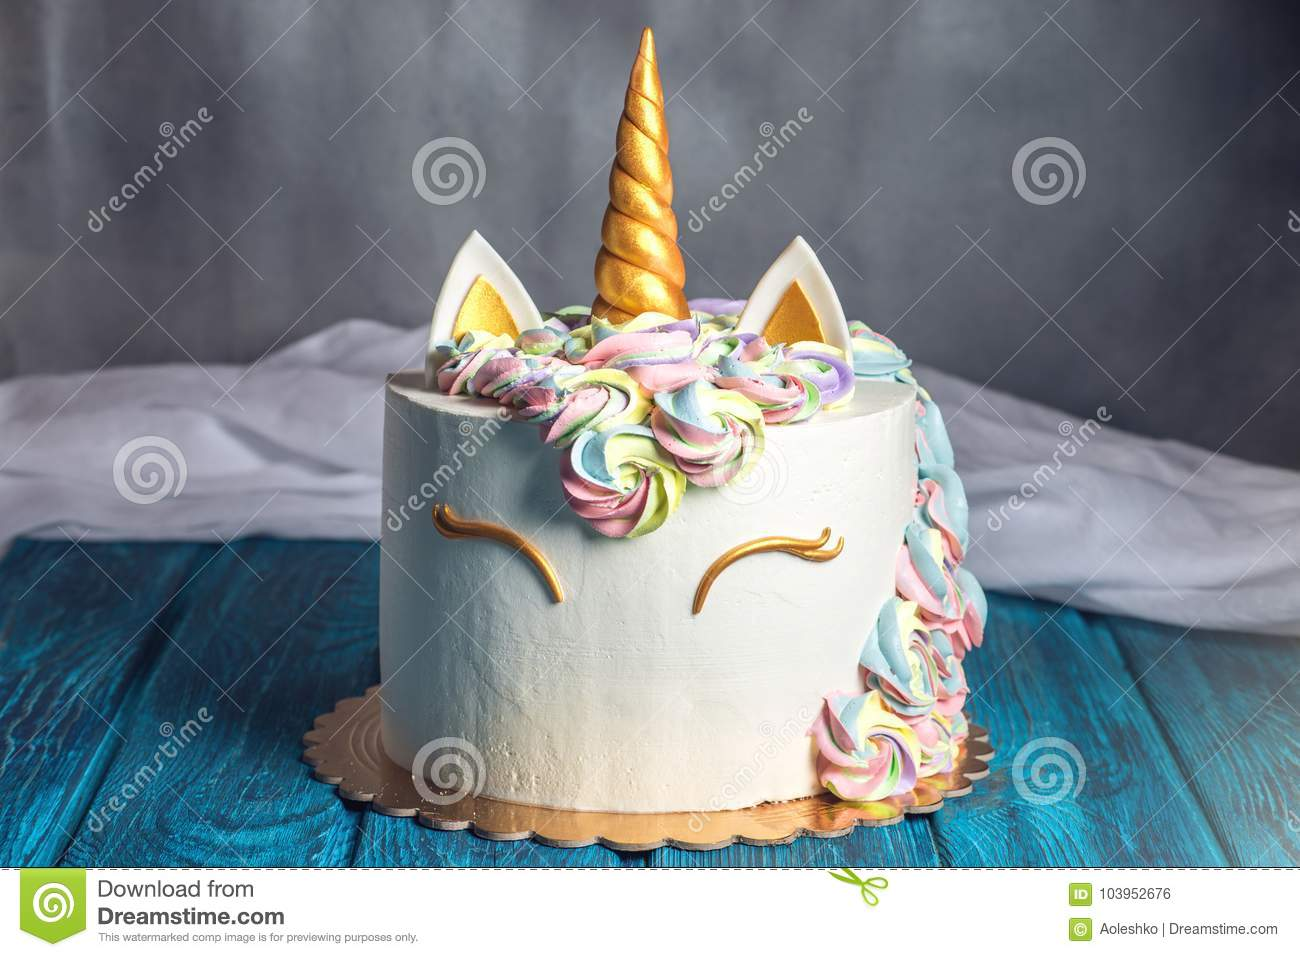 Beautiful bright cake decorated in the form of fantasy unicorn. Concept of a festive dessert for kids birthday